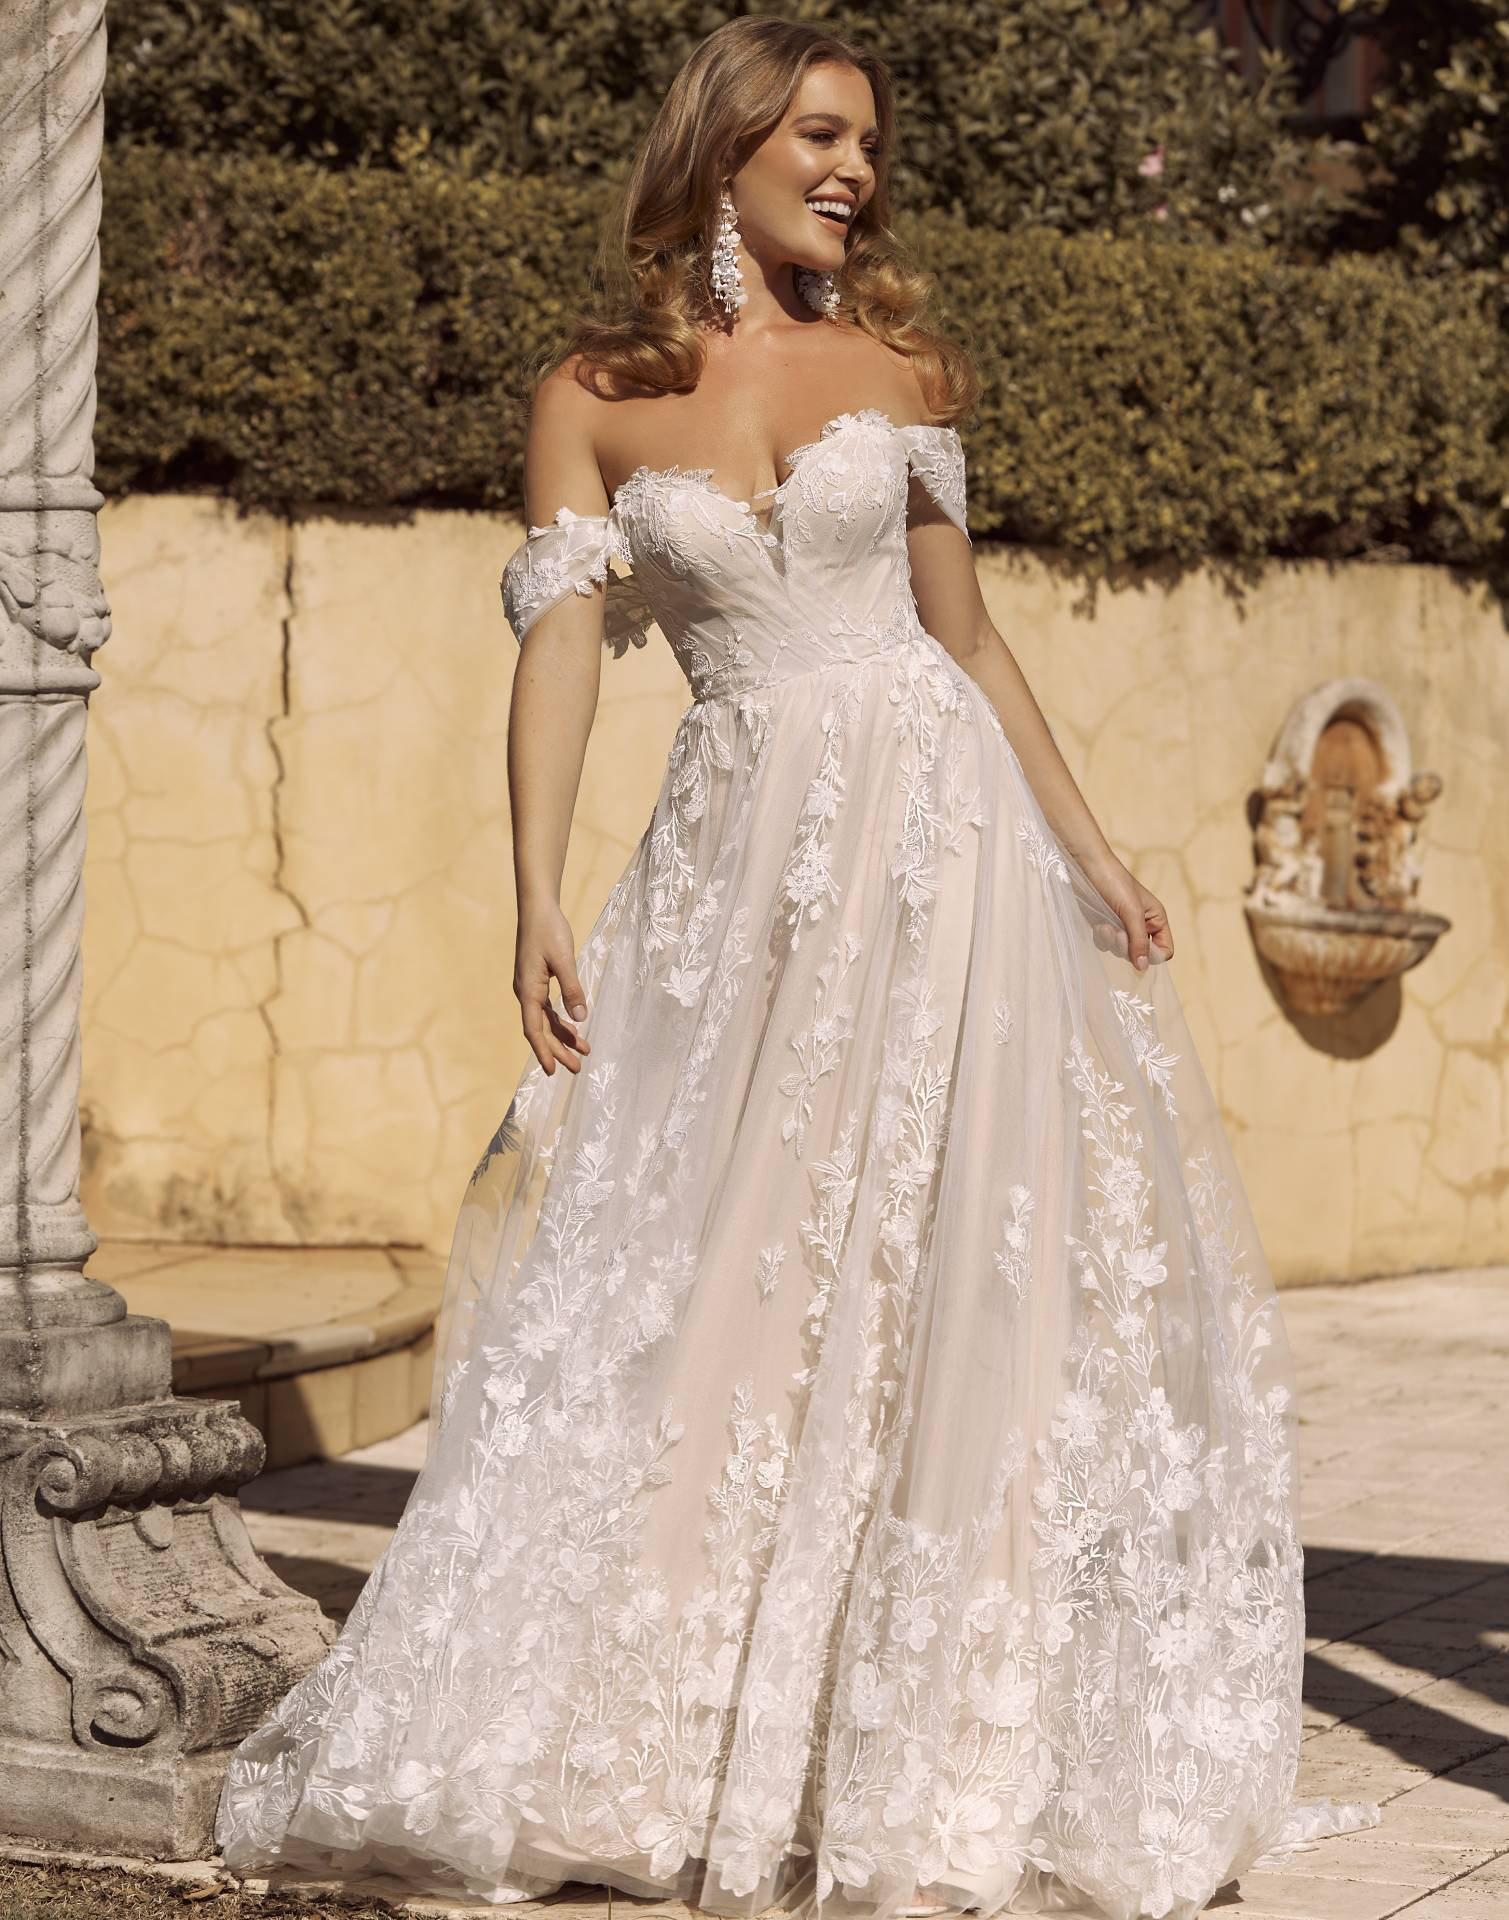 Brielle_wedding_dress_Madi_Lane_collection_front_image